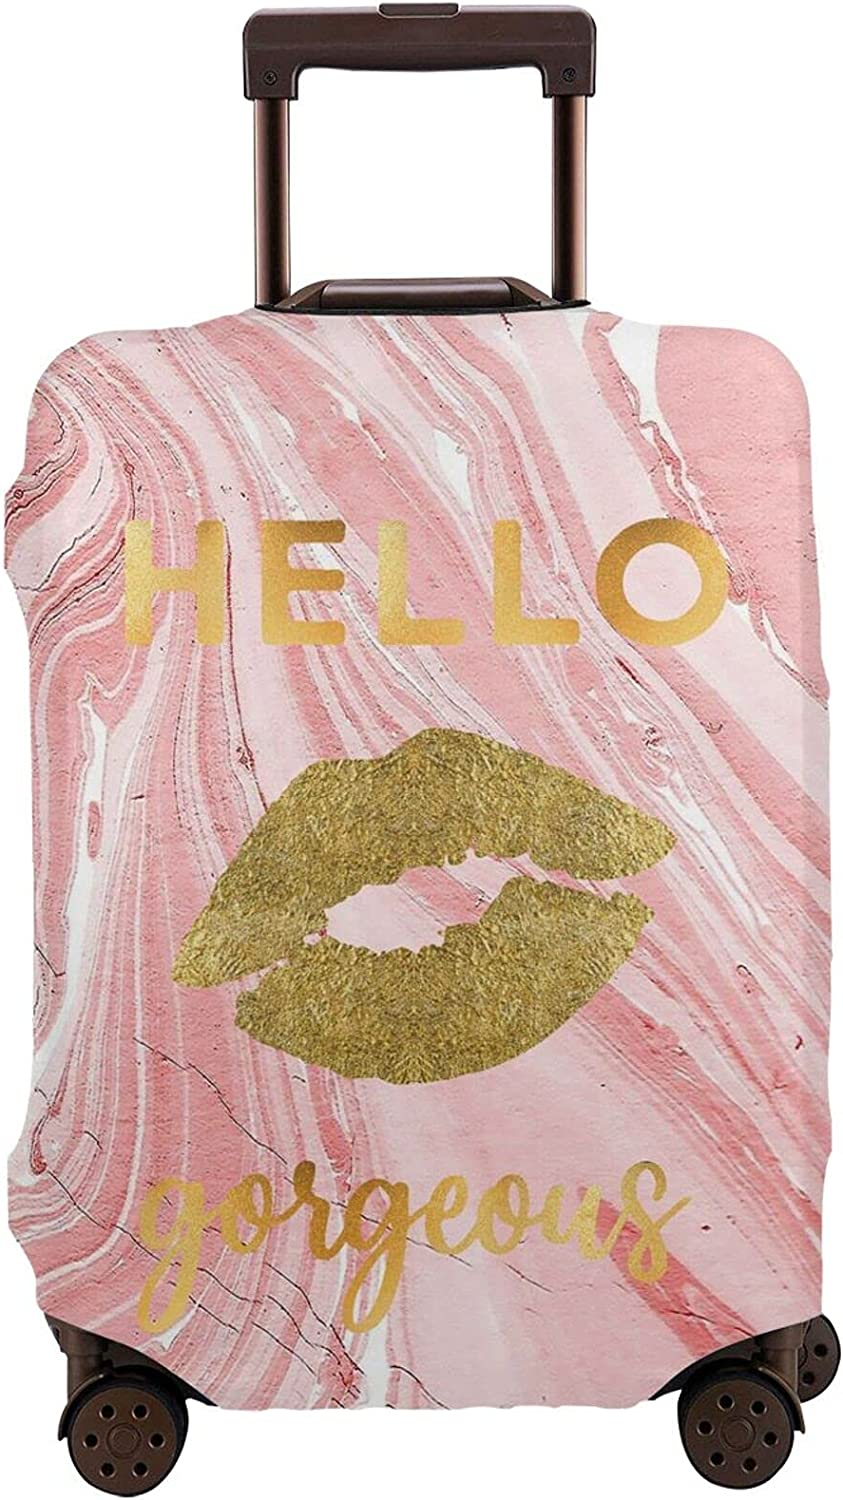 New life Hello Gorgeous Travel Luggage famous Cover in Gold Marble Suitcase Lip